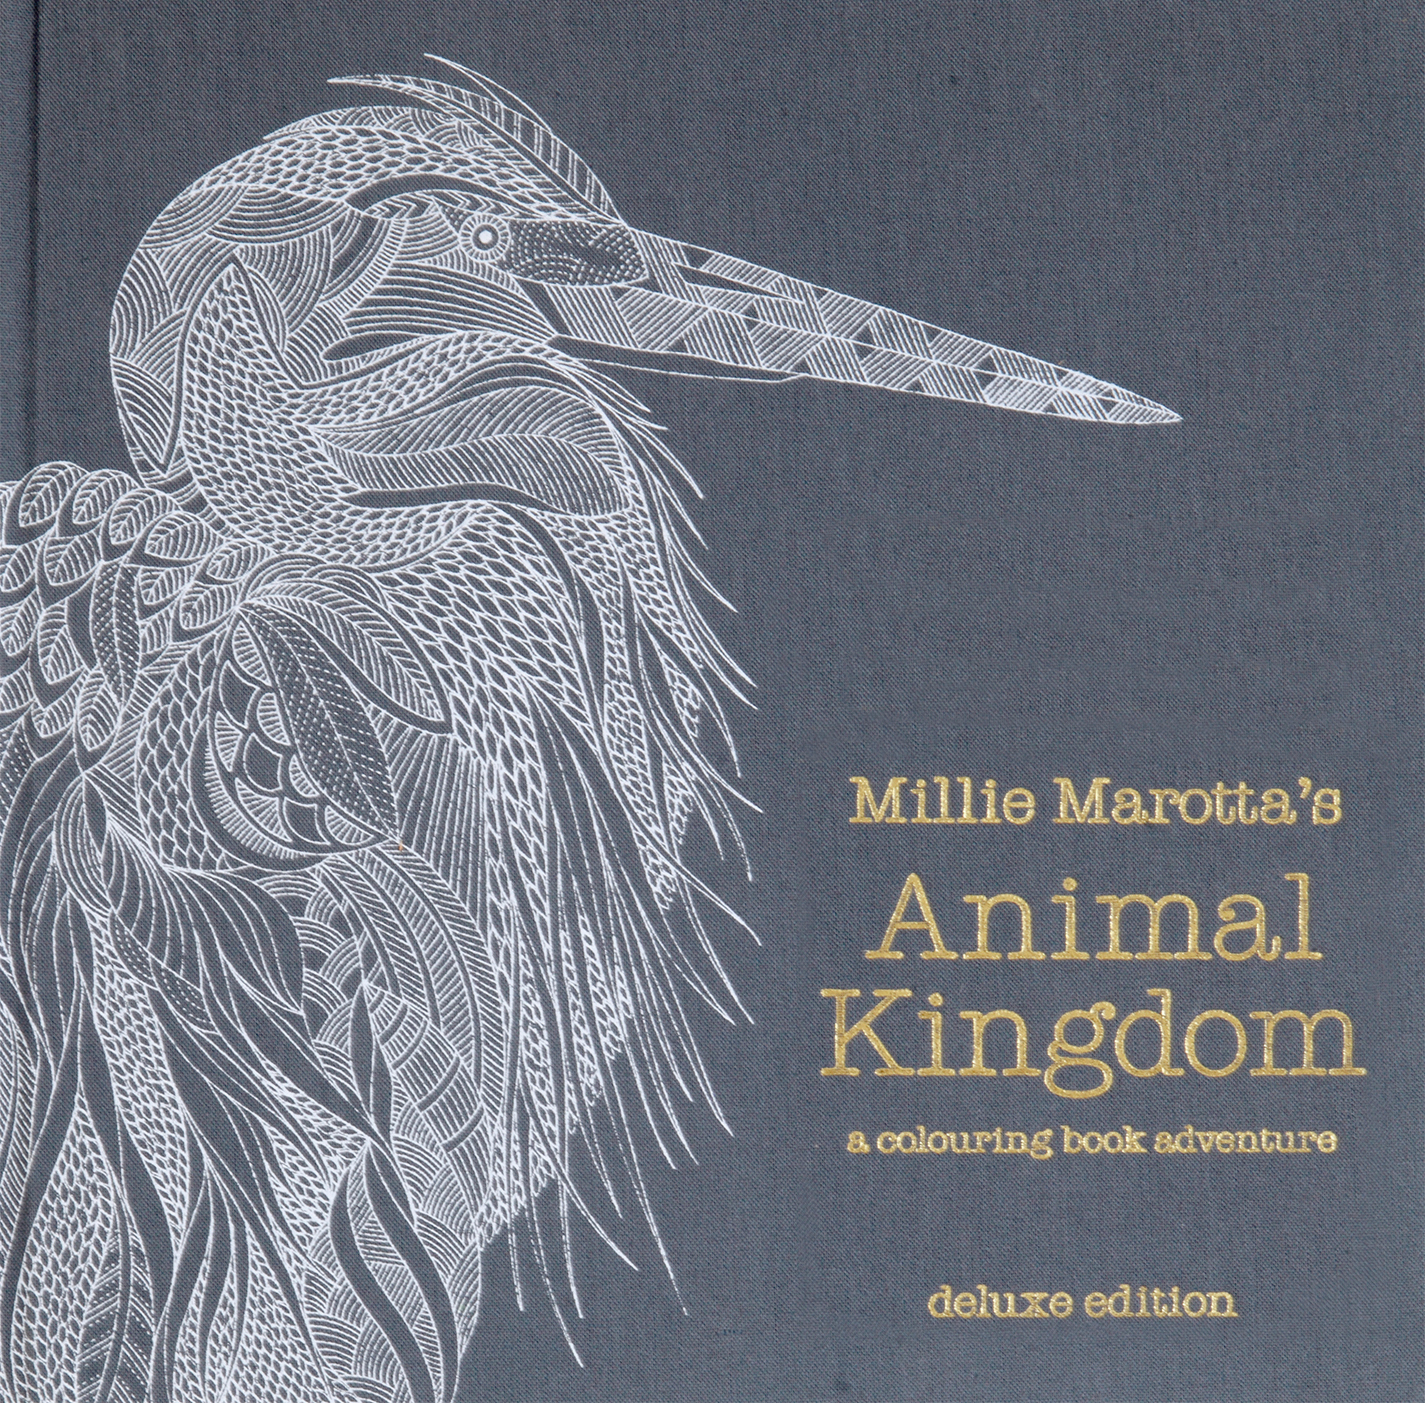 Millie Marotta's Animal Kingdom Deluxe Edition